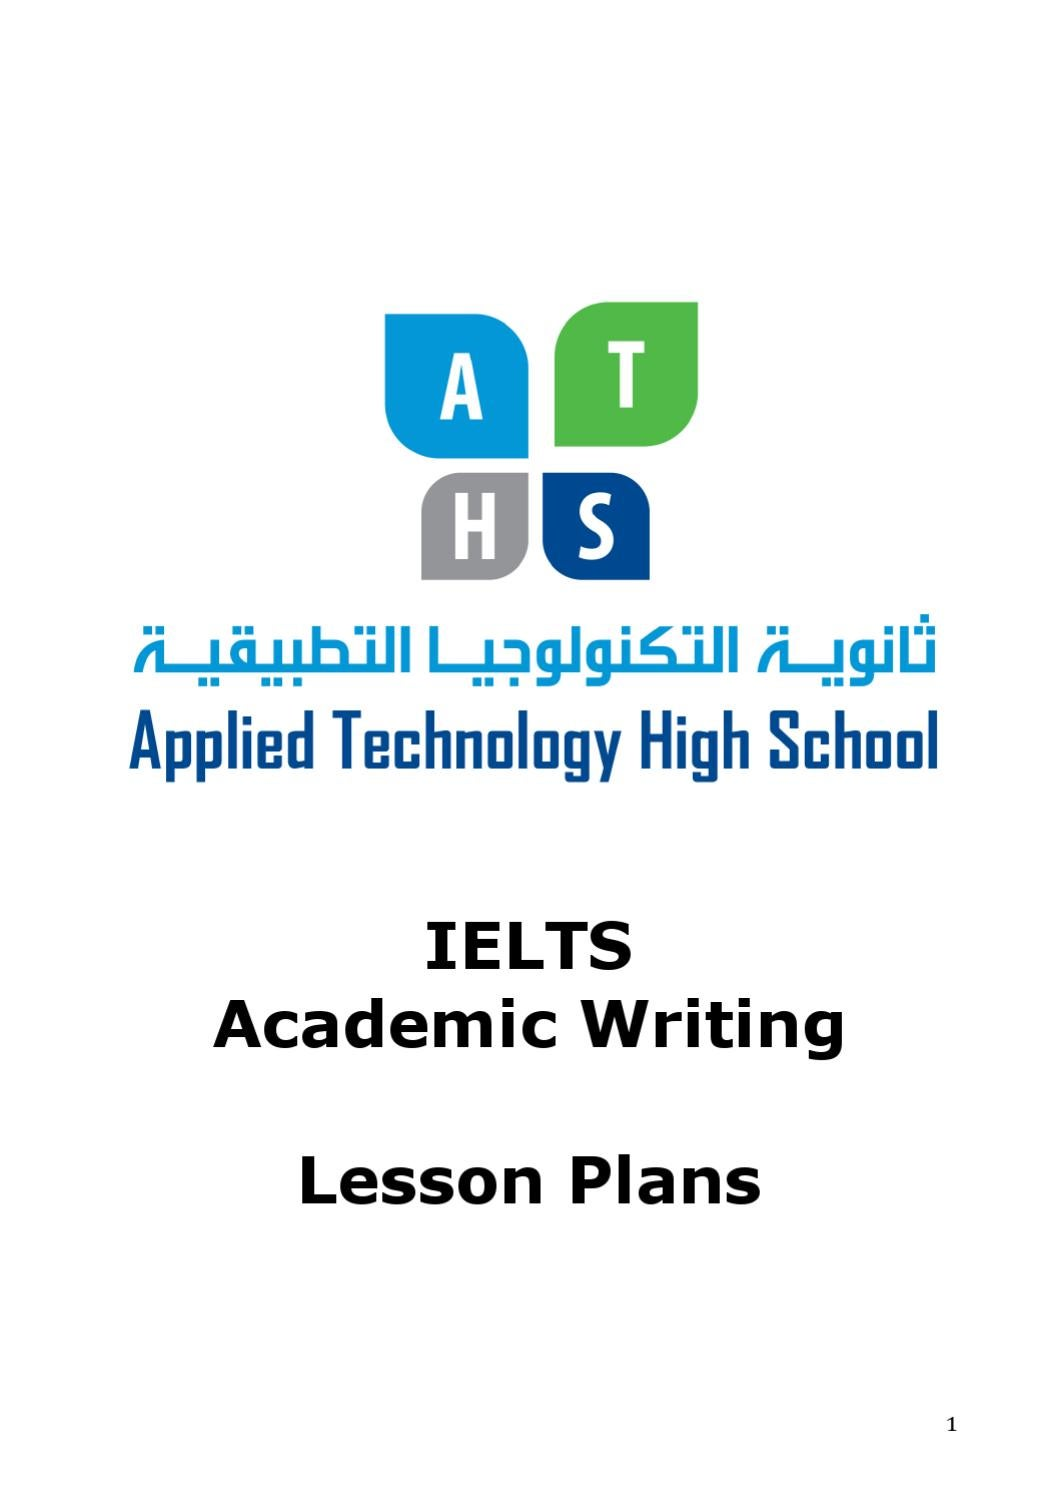 ielts writing lesson Ielts writing overview 75 lesson task 1 78 fitness activities task 1 99 lesson task 2 127 fitness activities task 2 146 tasks 1 & 2, rated samples 174 ielts writing doctor ielts grammar 195 ielts vocabulary 232 ielts speaking lesson 261 fitness activities 280 interview, rated sample 298 top.